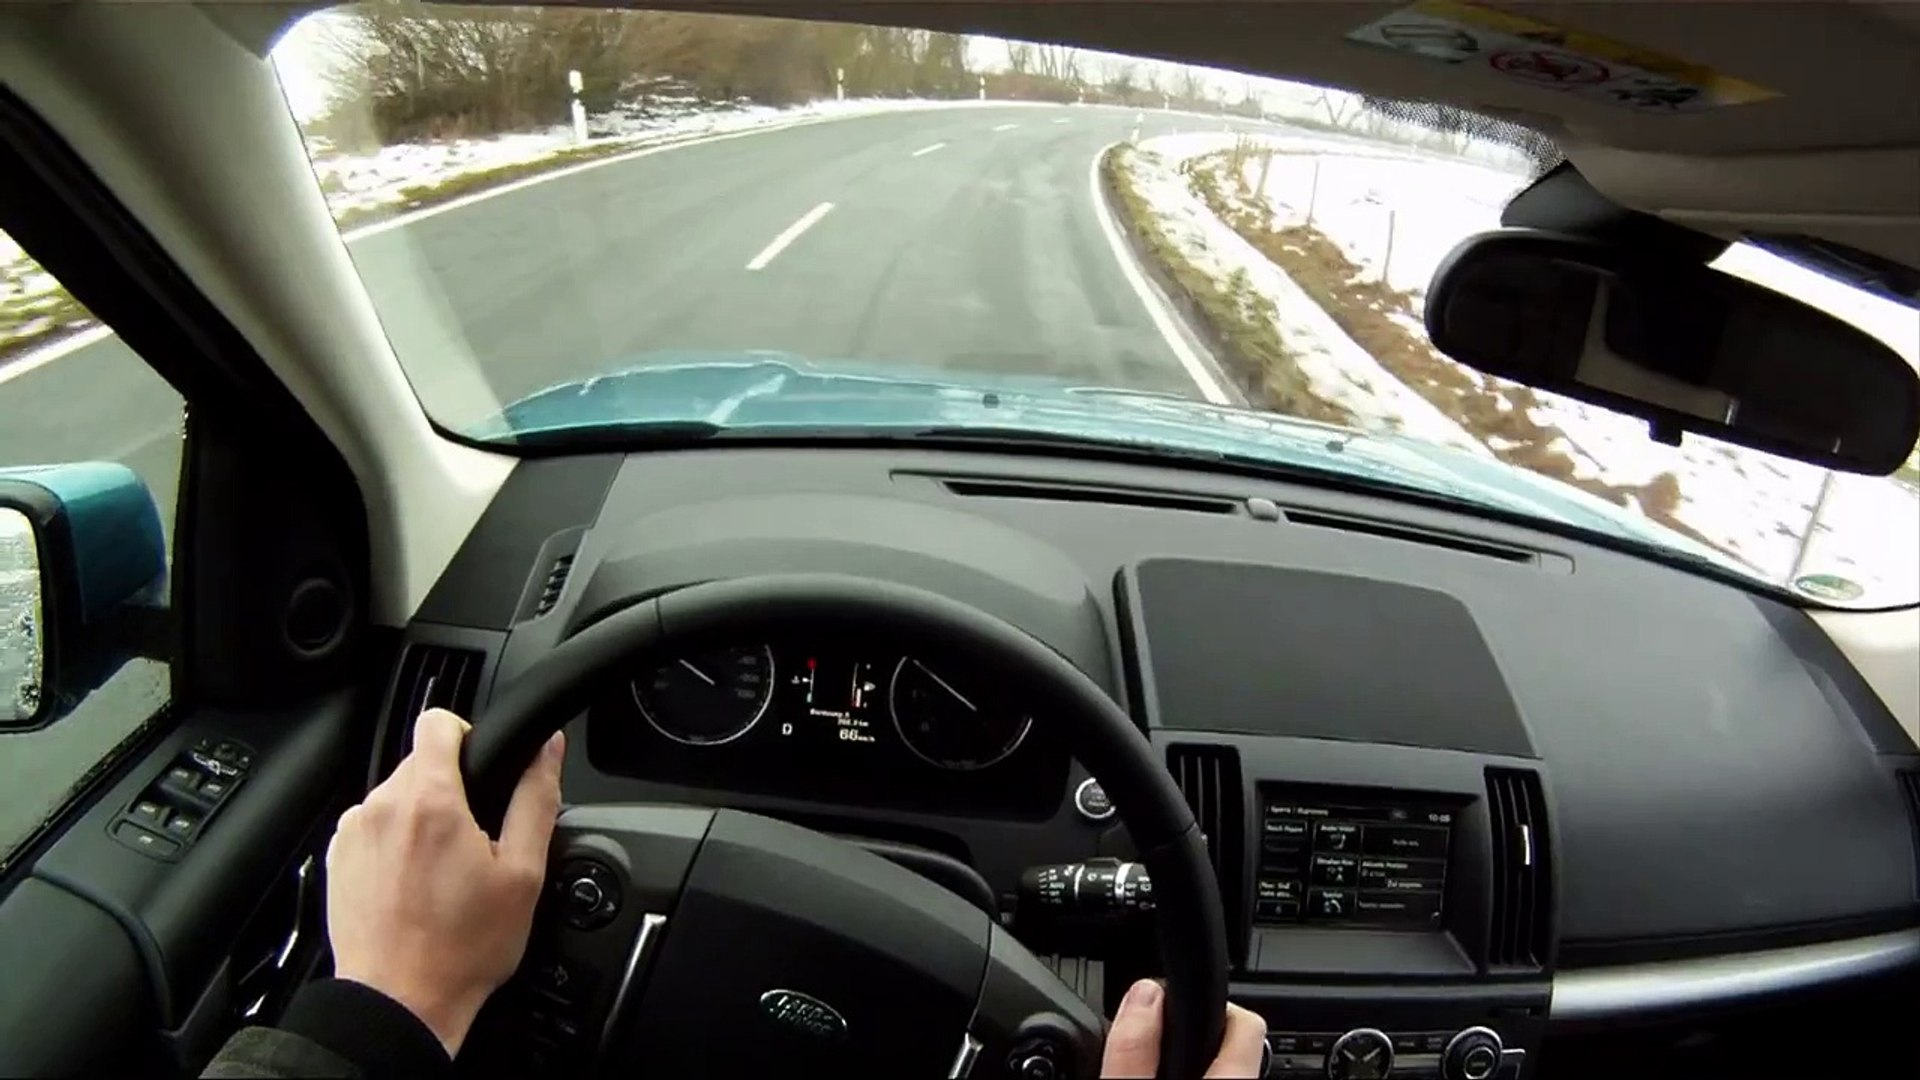 ' 2013 Land Rover Freelander 2 / LR2 ' POV Test Drive - TheGetawayer